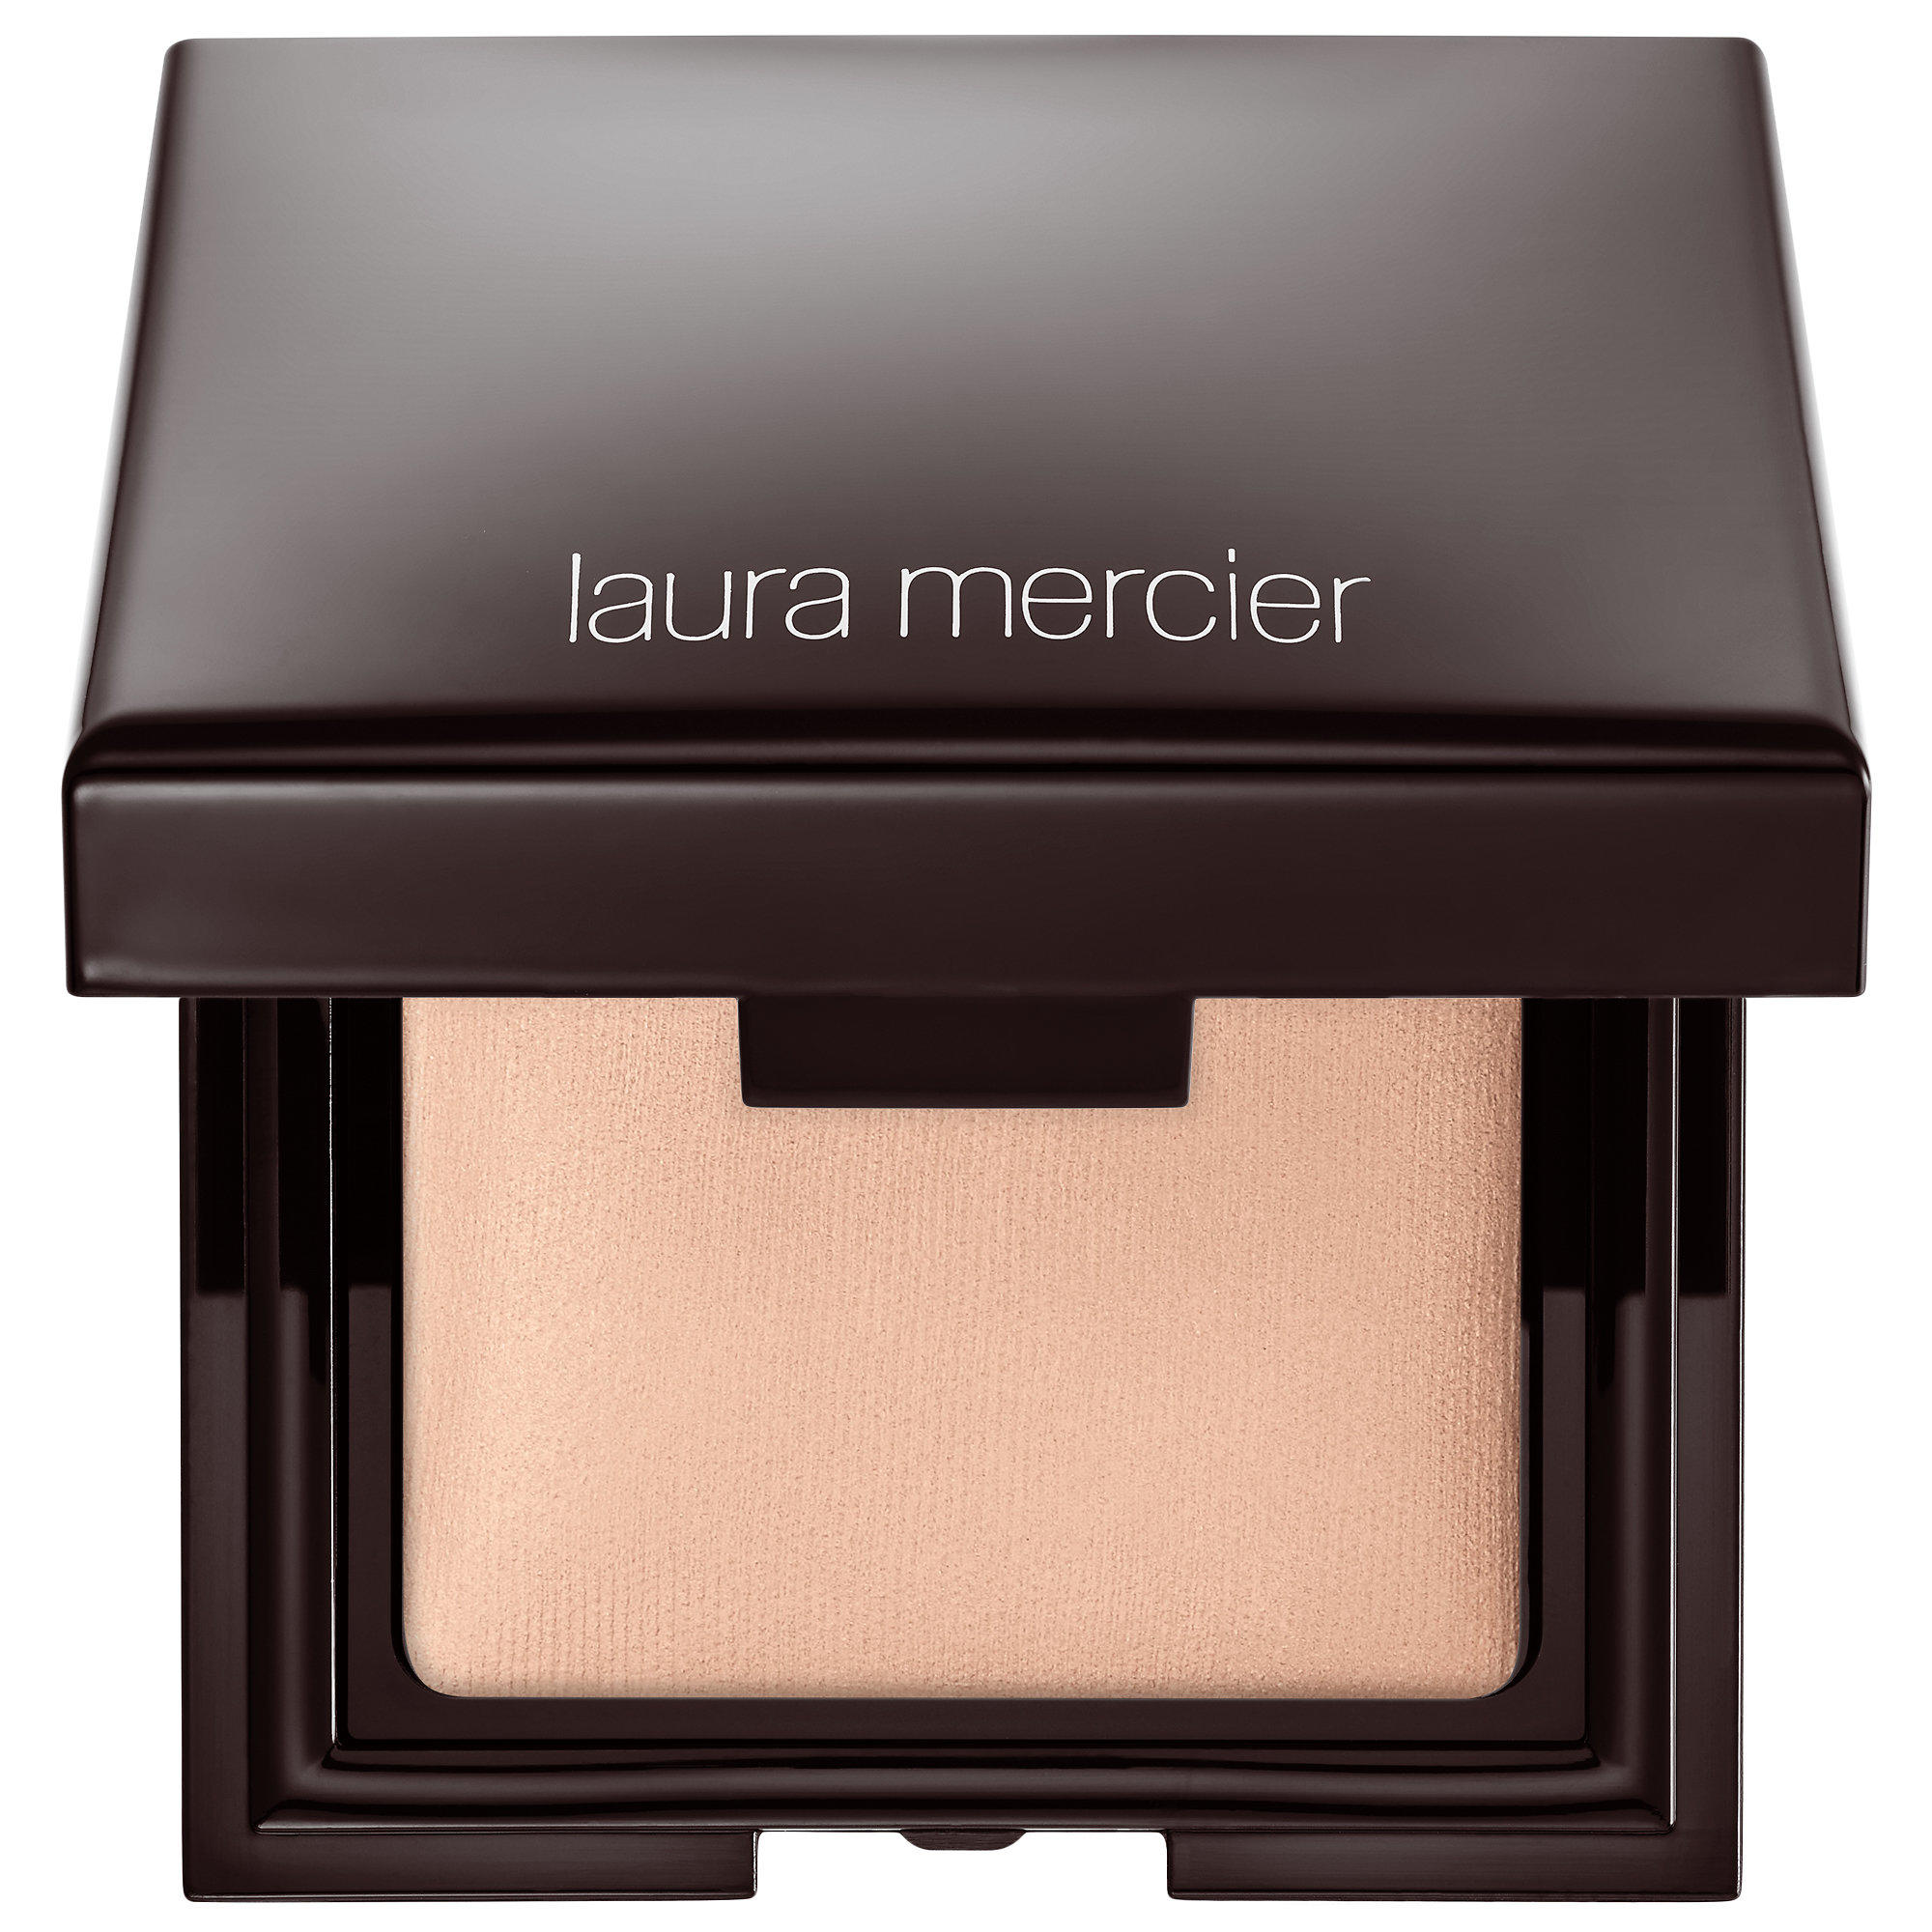 Laura Mercier Candleglow Sheer Perfecting Powder Fair 1